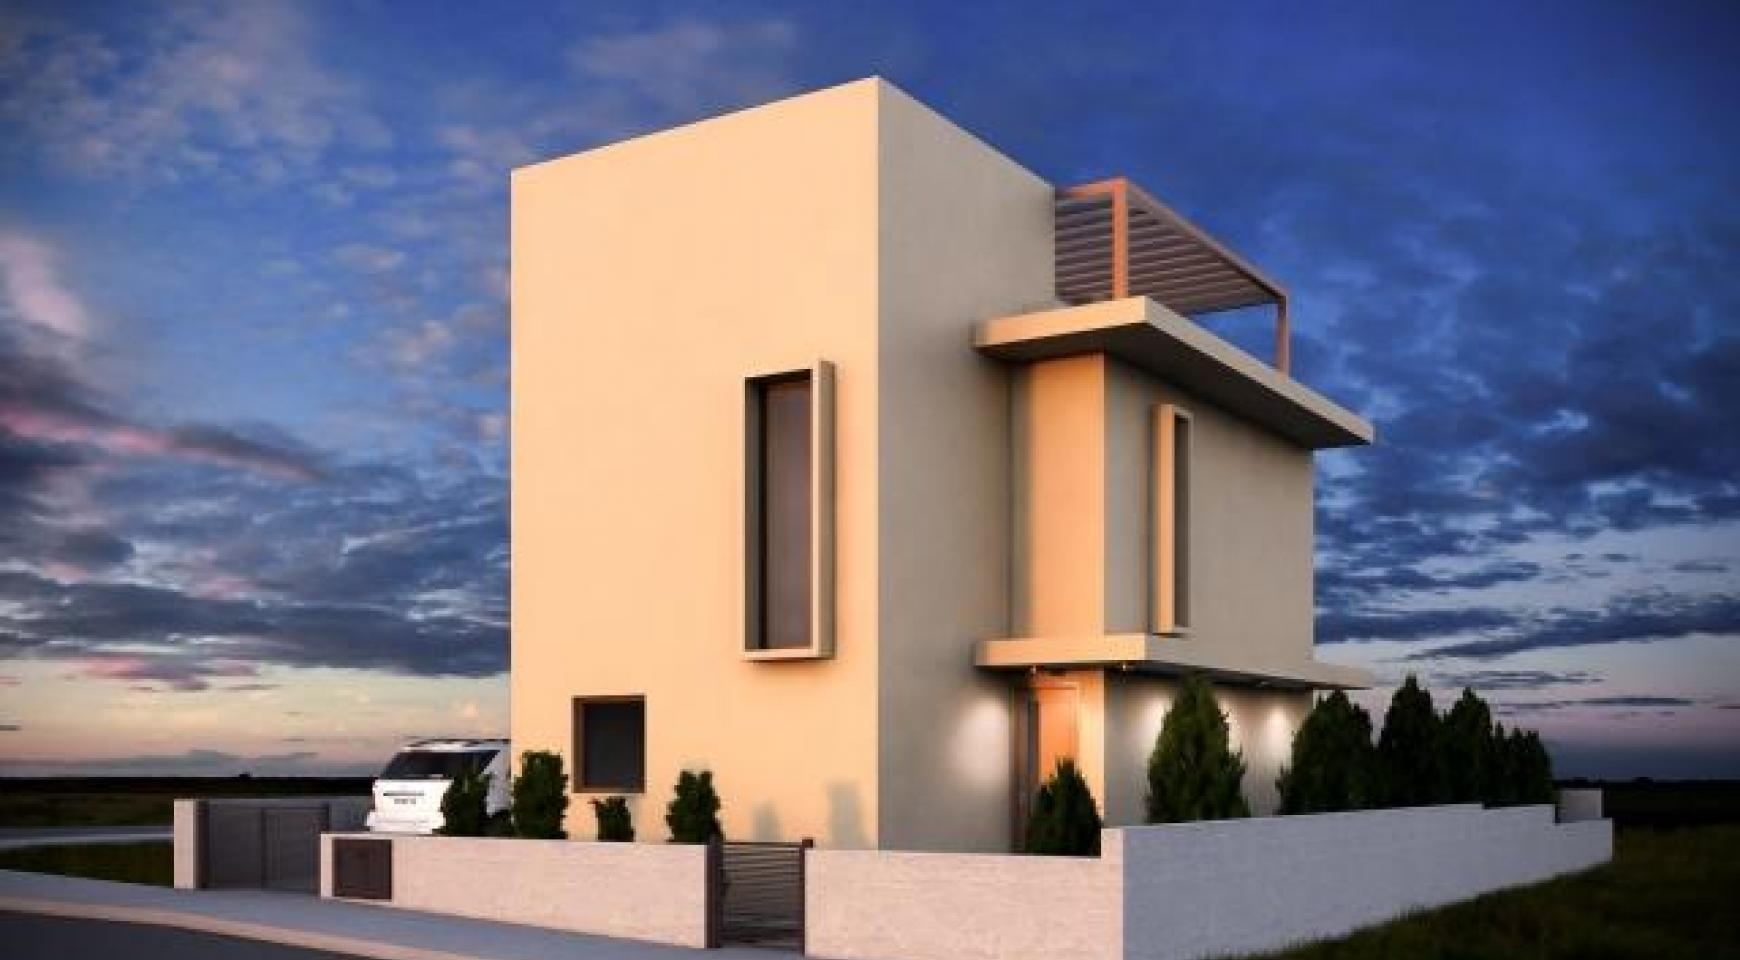 New Contemporary 3 Bedroom House in Central Location - 3